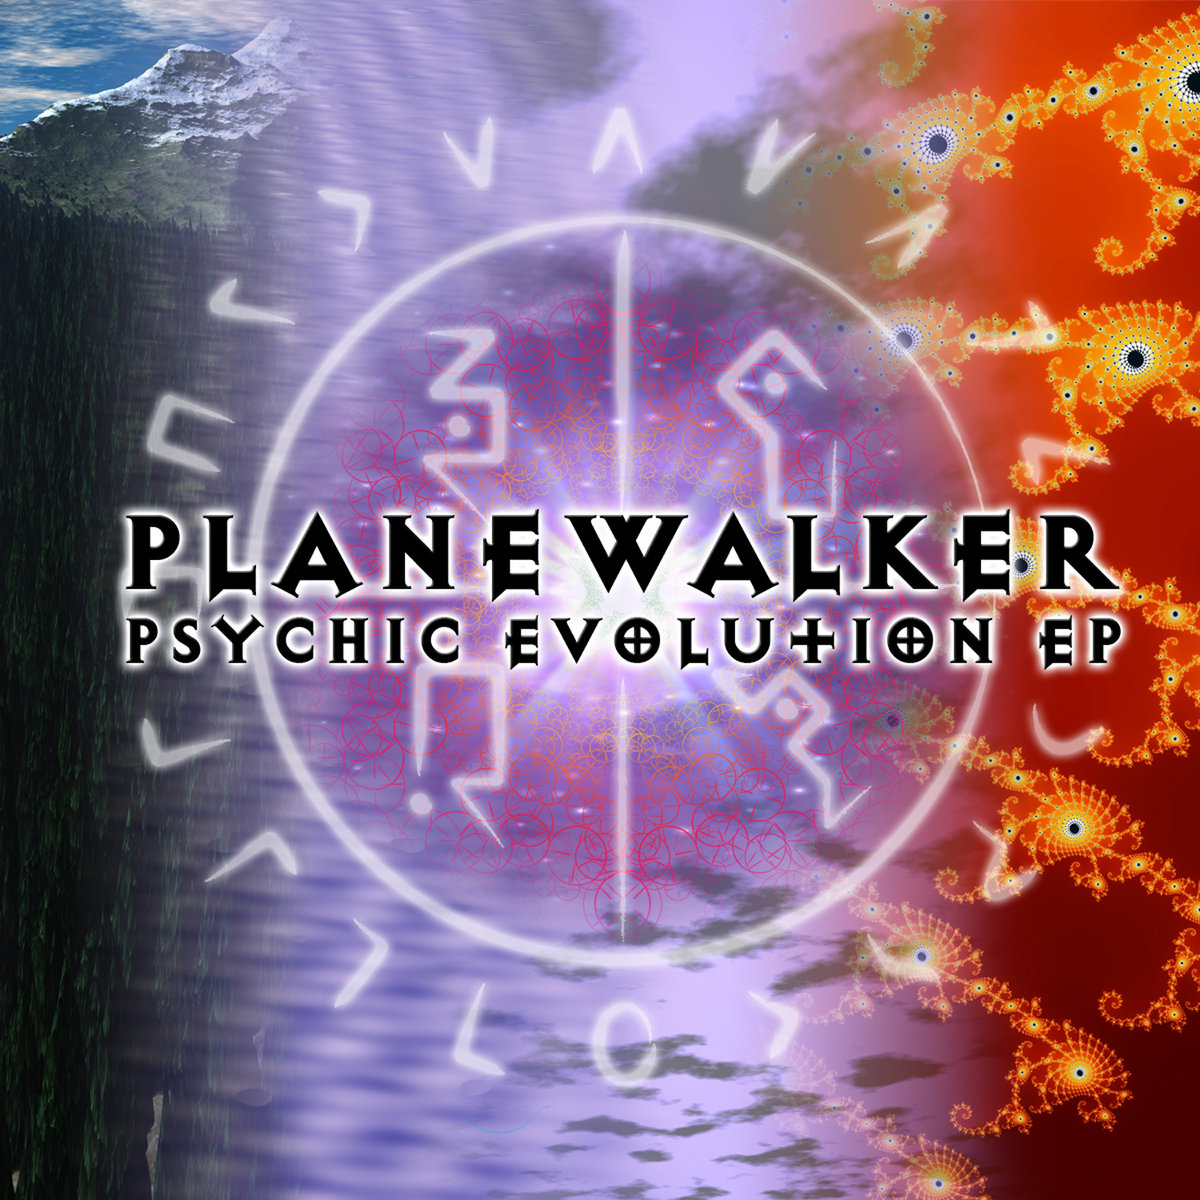 Planewalker - Vampire Hunter @ 'Psychic Evolution' album (electronic, goa)